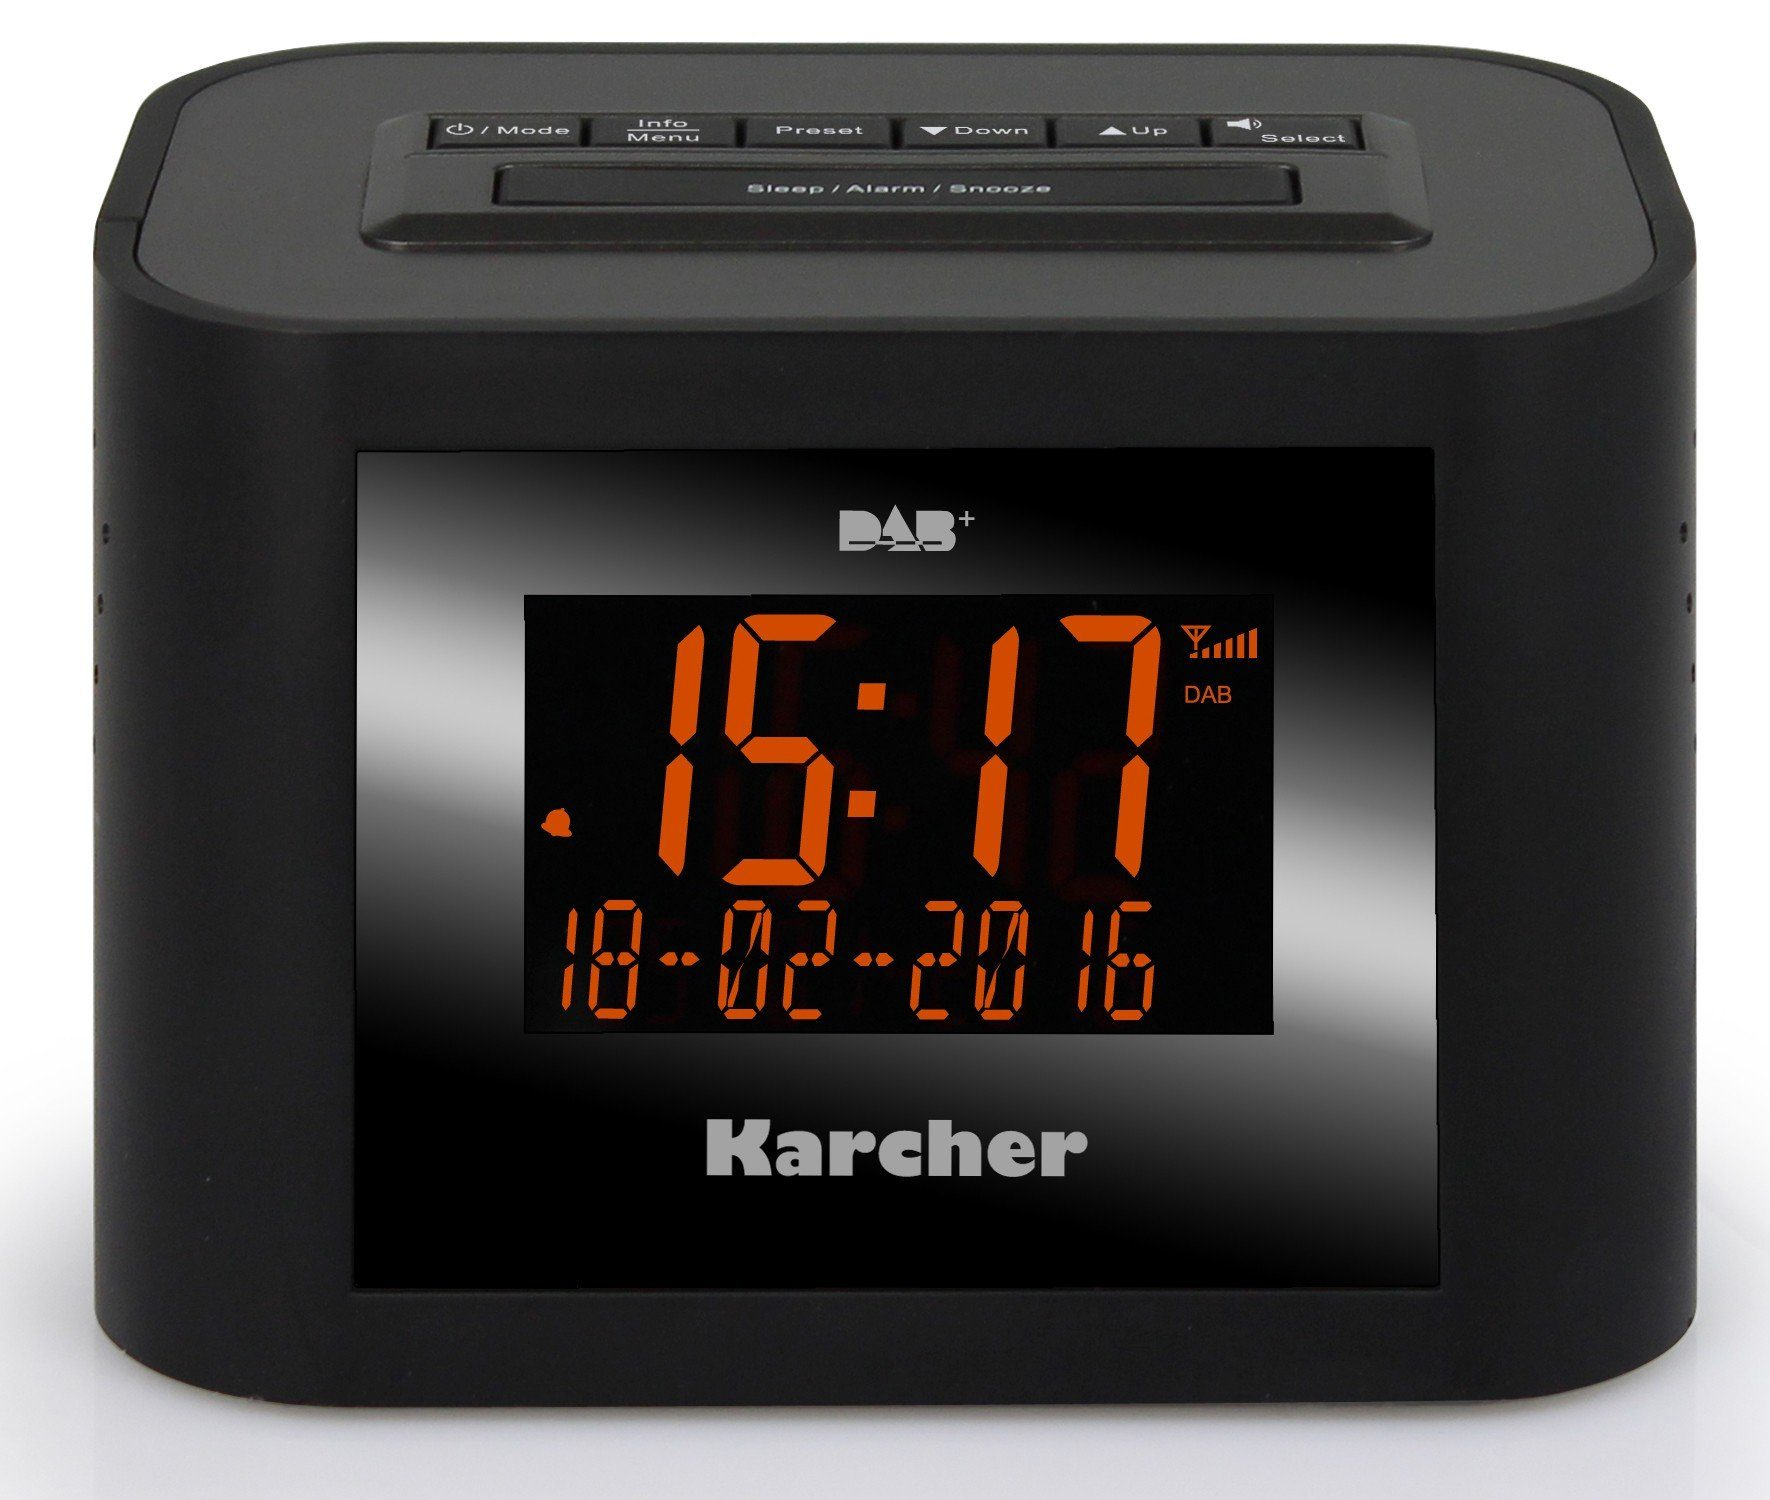 Karcher digitales Uhrenradio »DAB 2420«